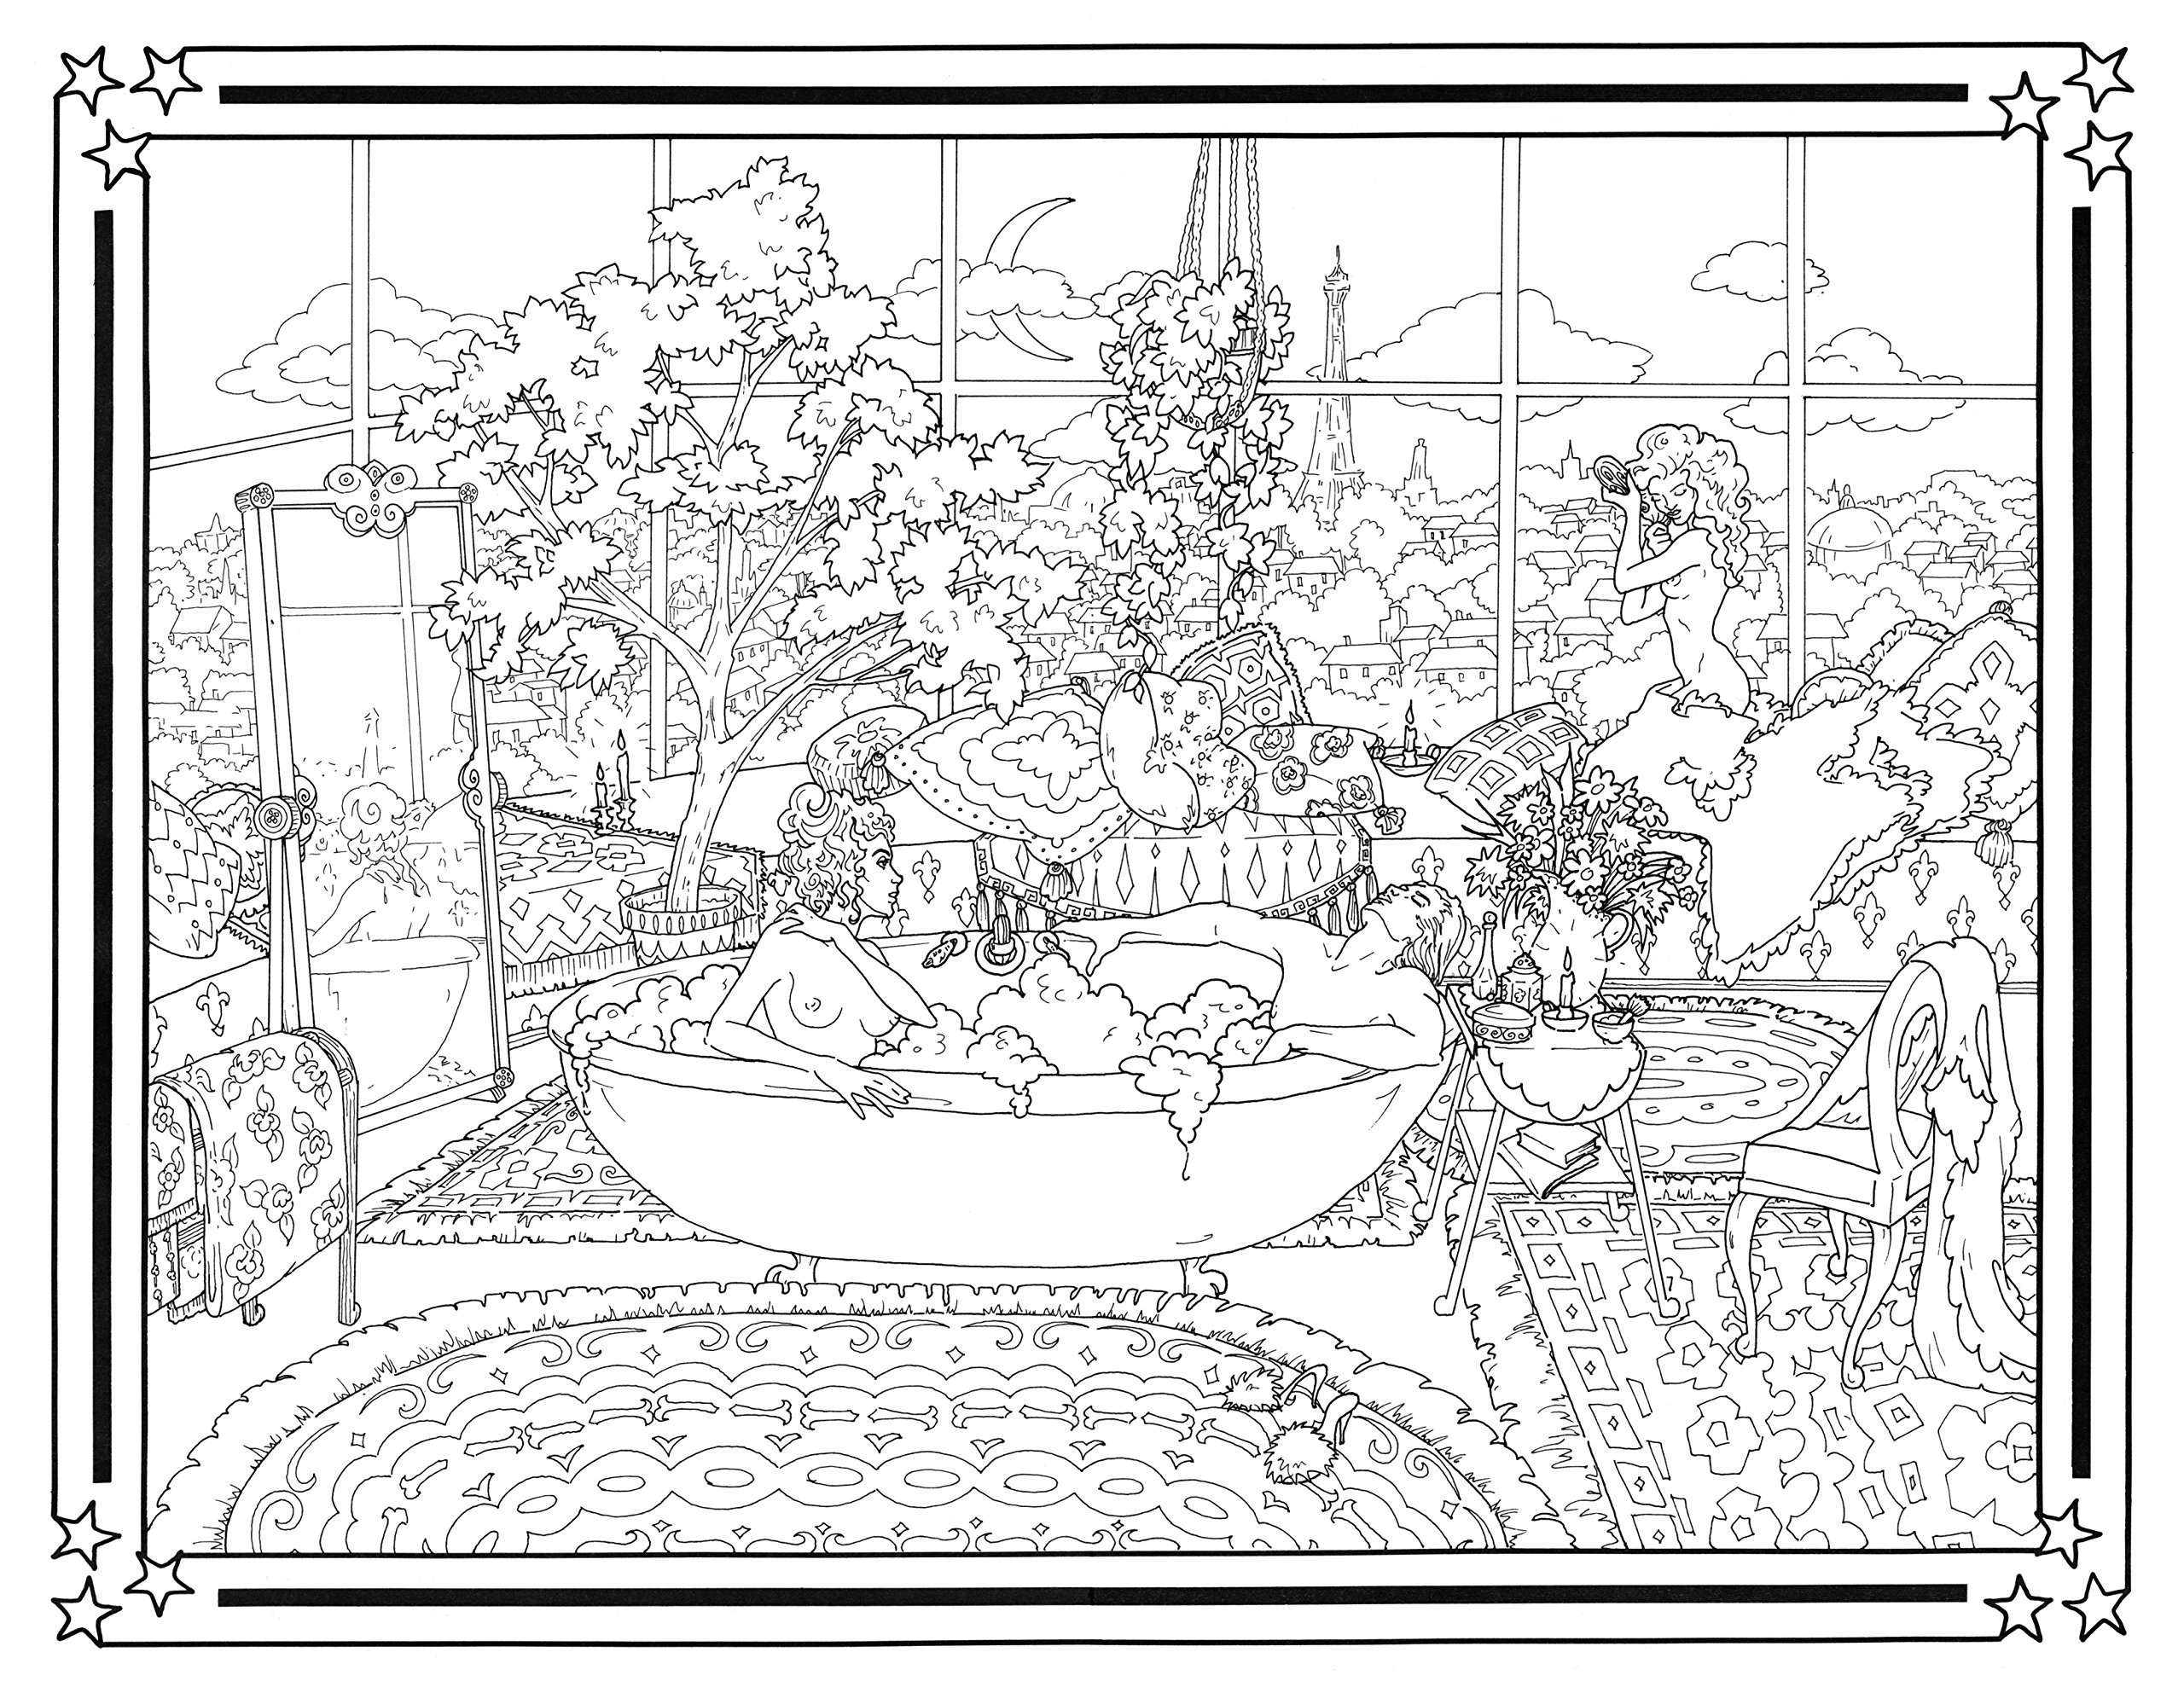 Outlander Coloring Book - The Cobalt Jade Website